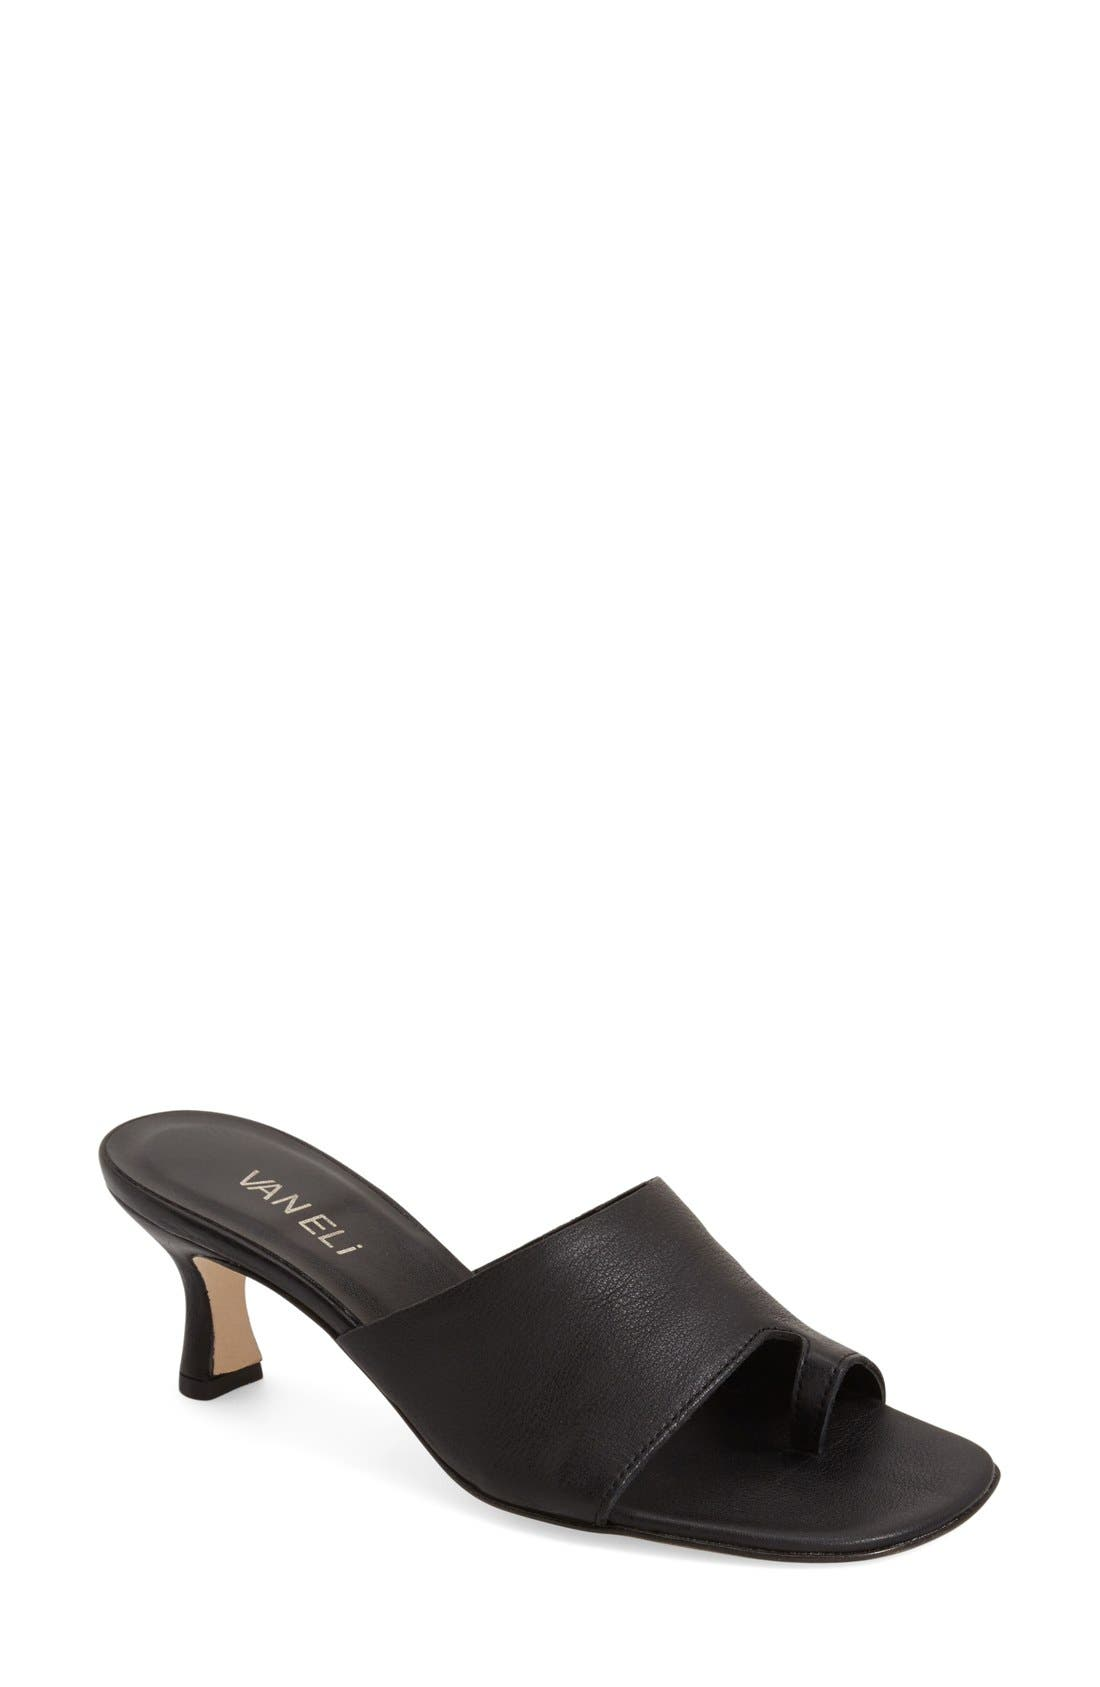 'Melea' Slide Sandal,                             Main thumbnail 1, color,                             Black Sweta Calf